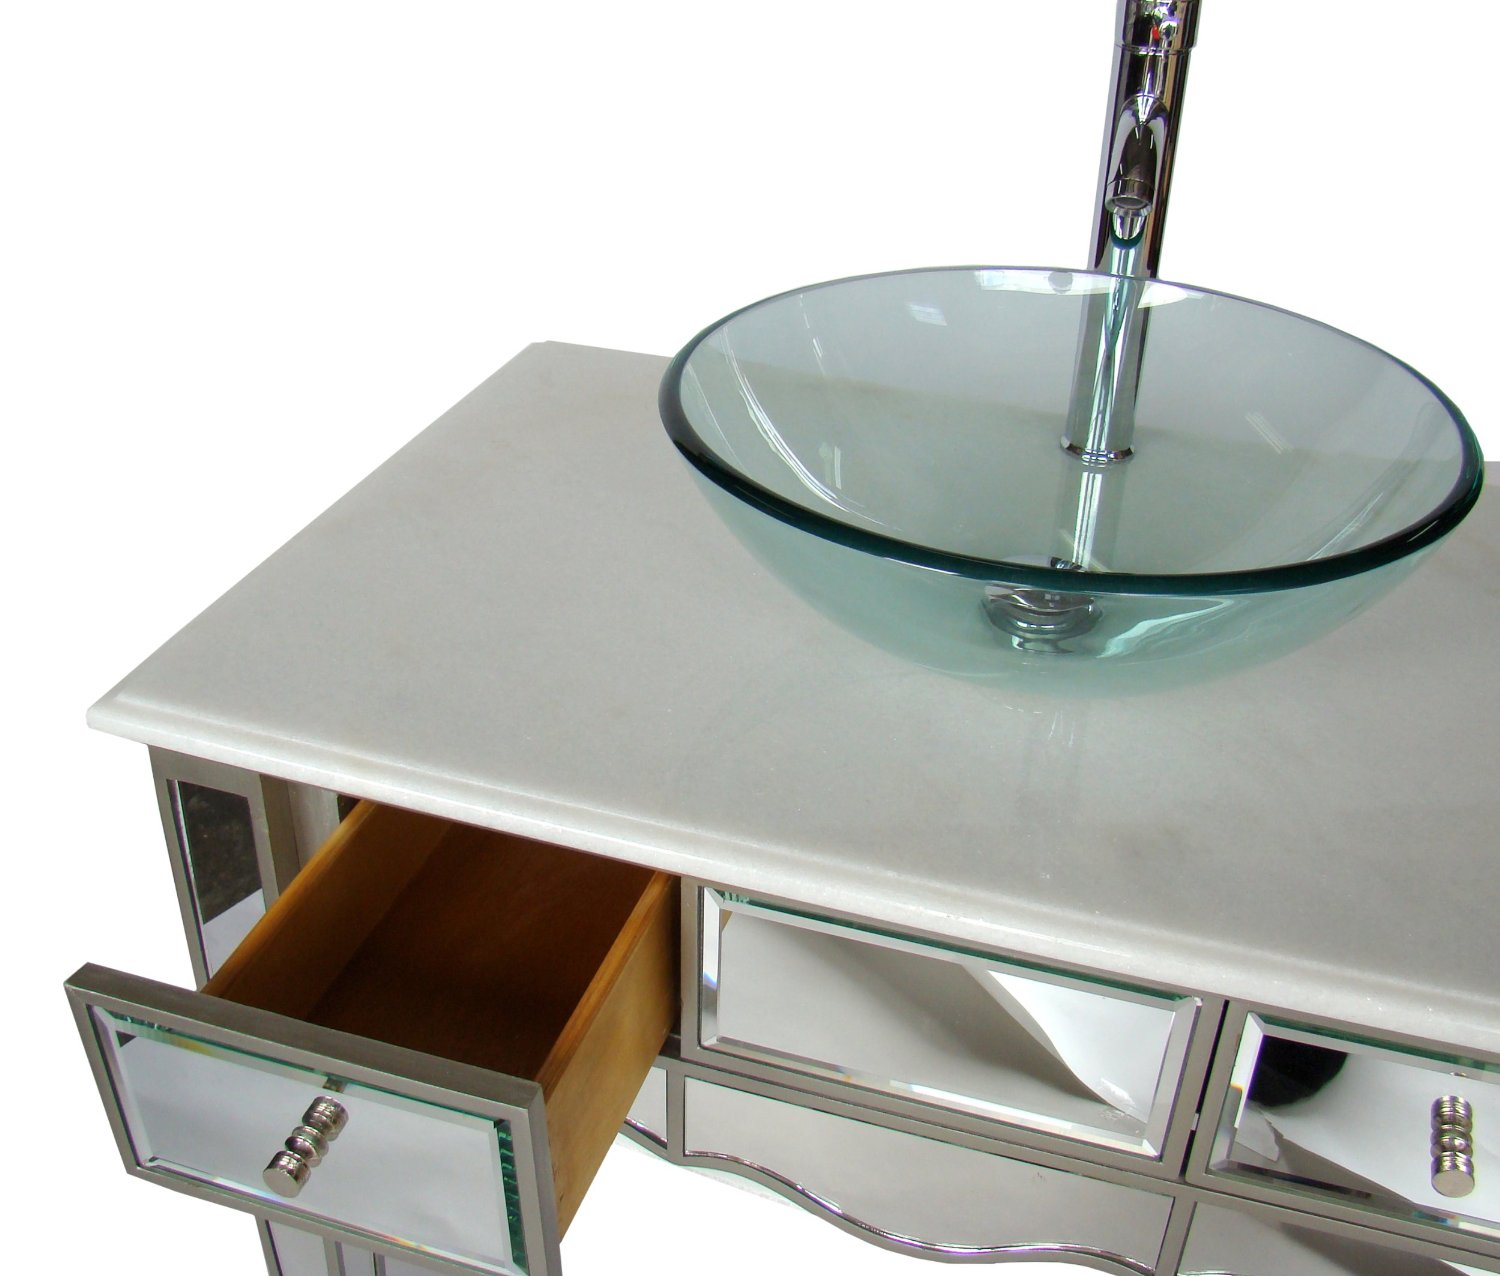 Adelina 30 Inch Mirrored Vessel Sink Bathroom Vanity